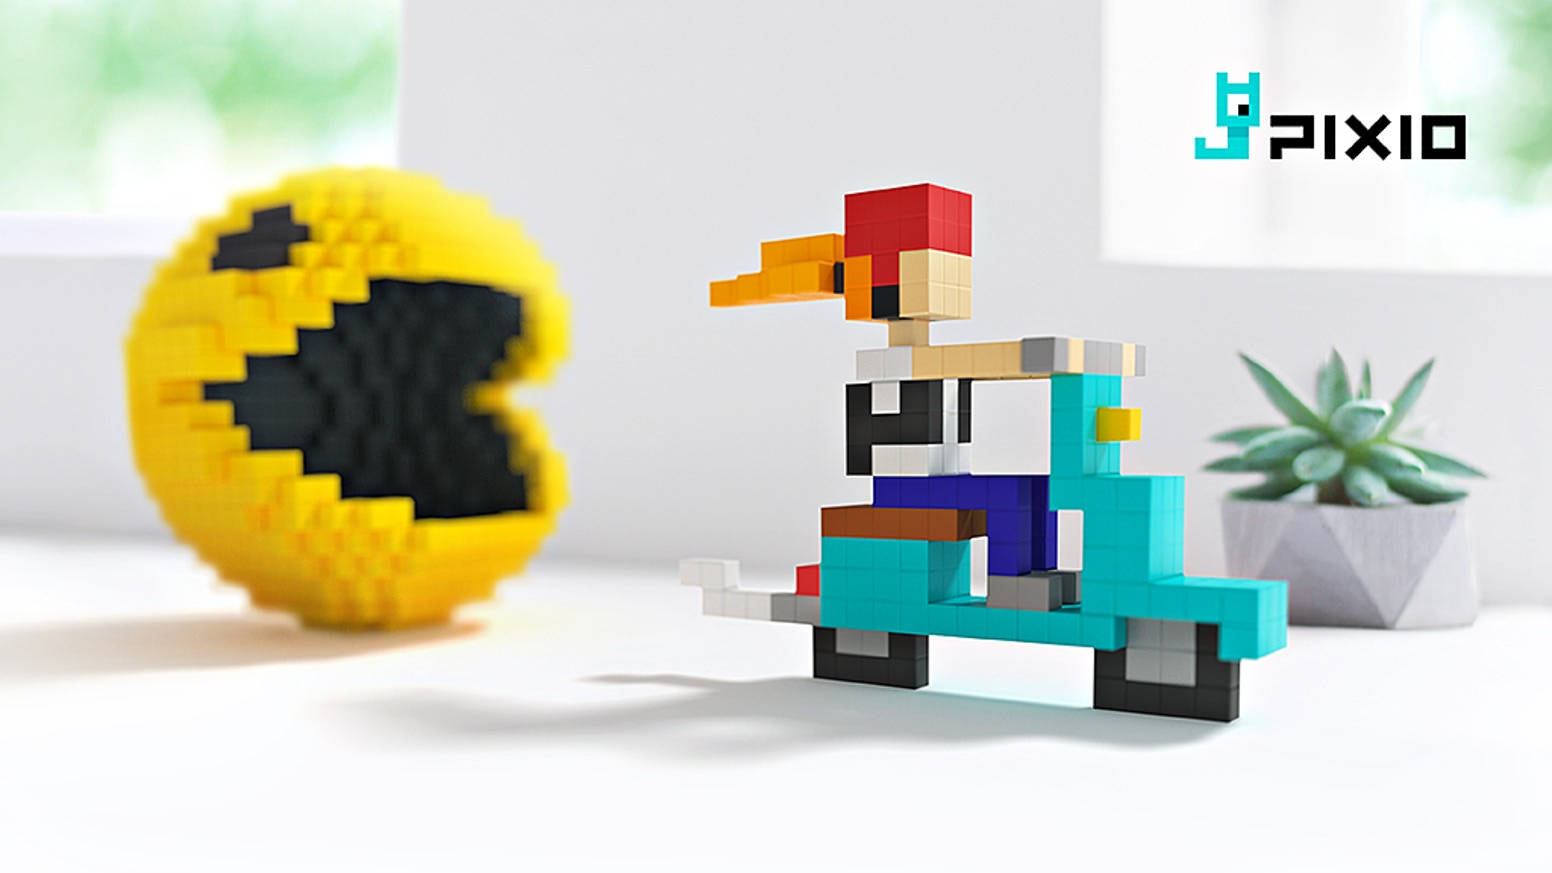 Pixio Magnetic Construction Set In The Pixel Art Style By Pixio